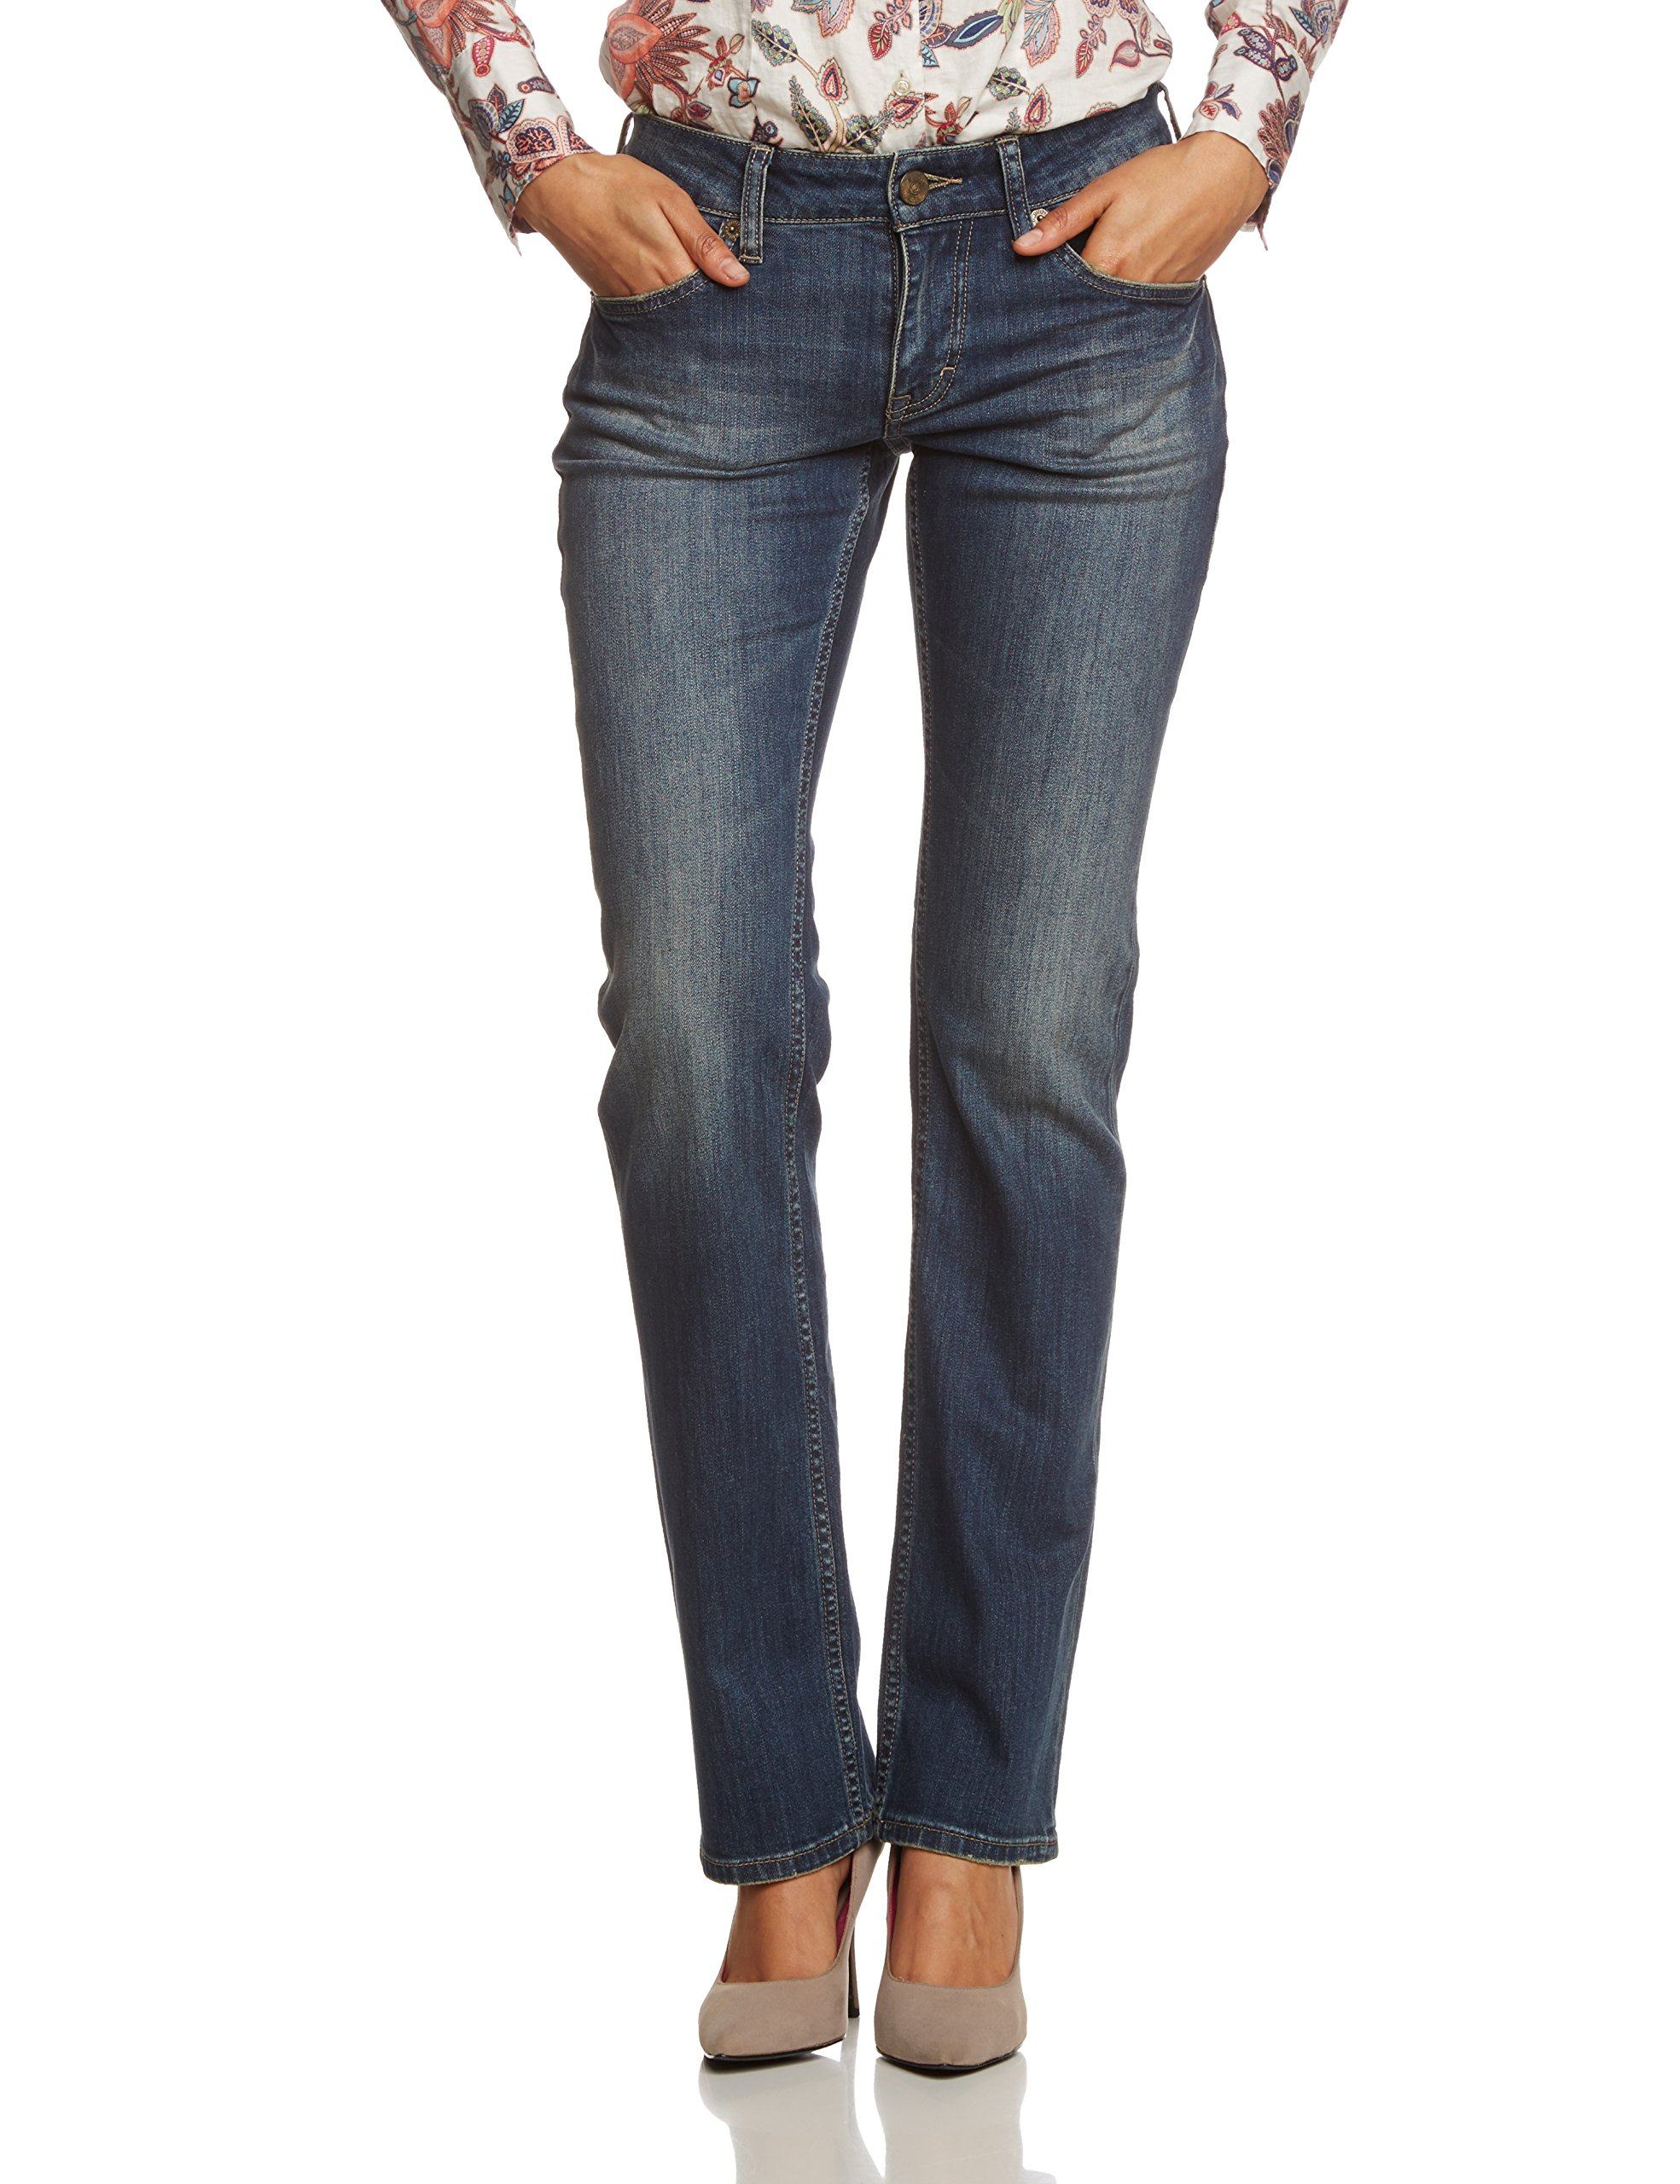 Straight blauscratched Mustang JeansBleu Sissy Femme 579W32L34 Used yb76fg